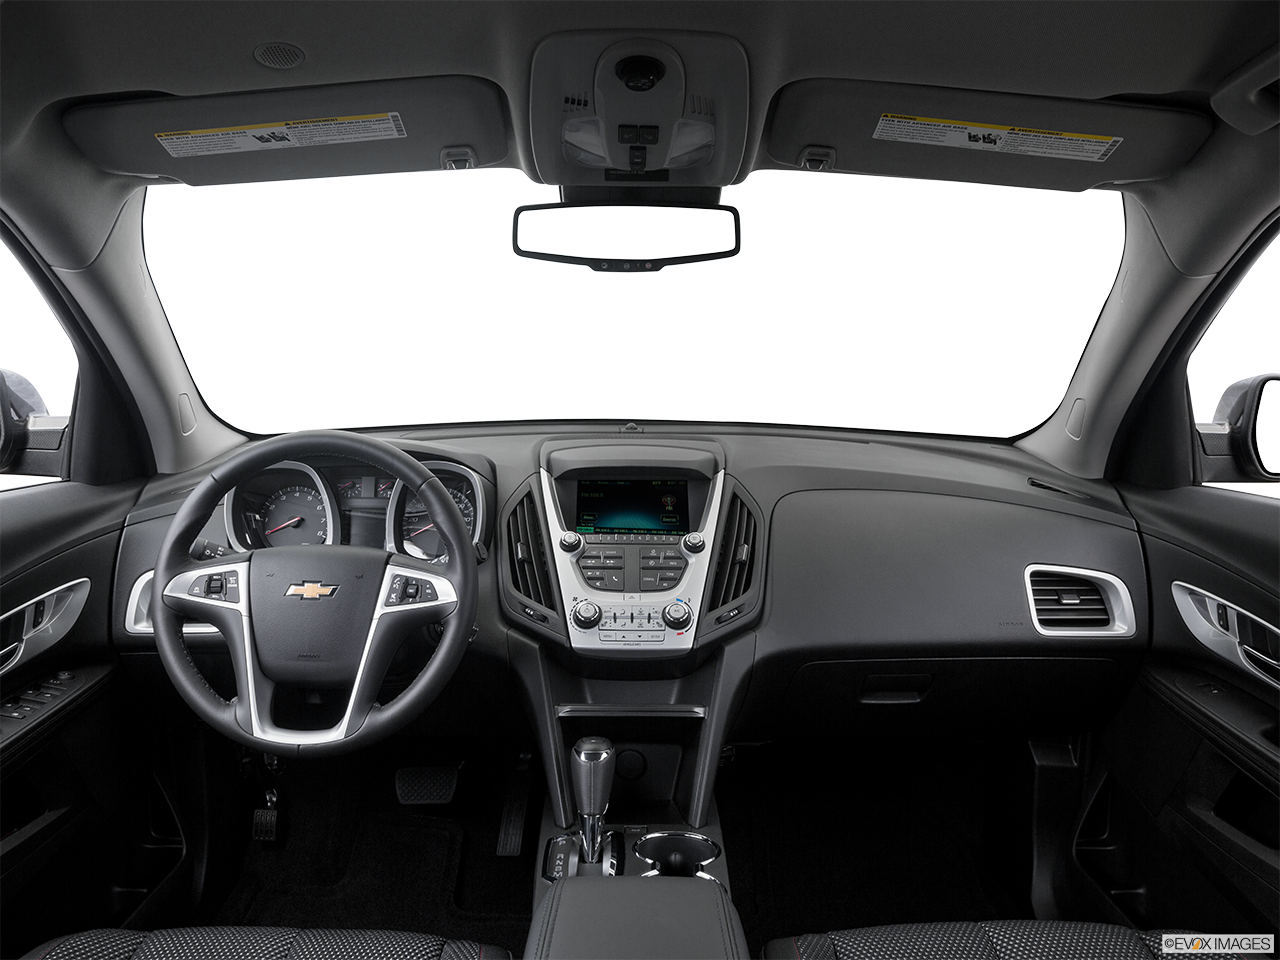 2016 chevrolet equinox san antonio alamo city chevrolet. Black Bedroom Furniture Sets. Home Design Ideas